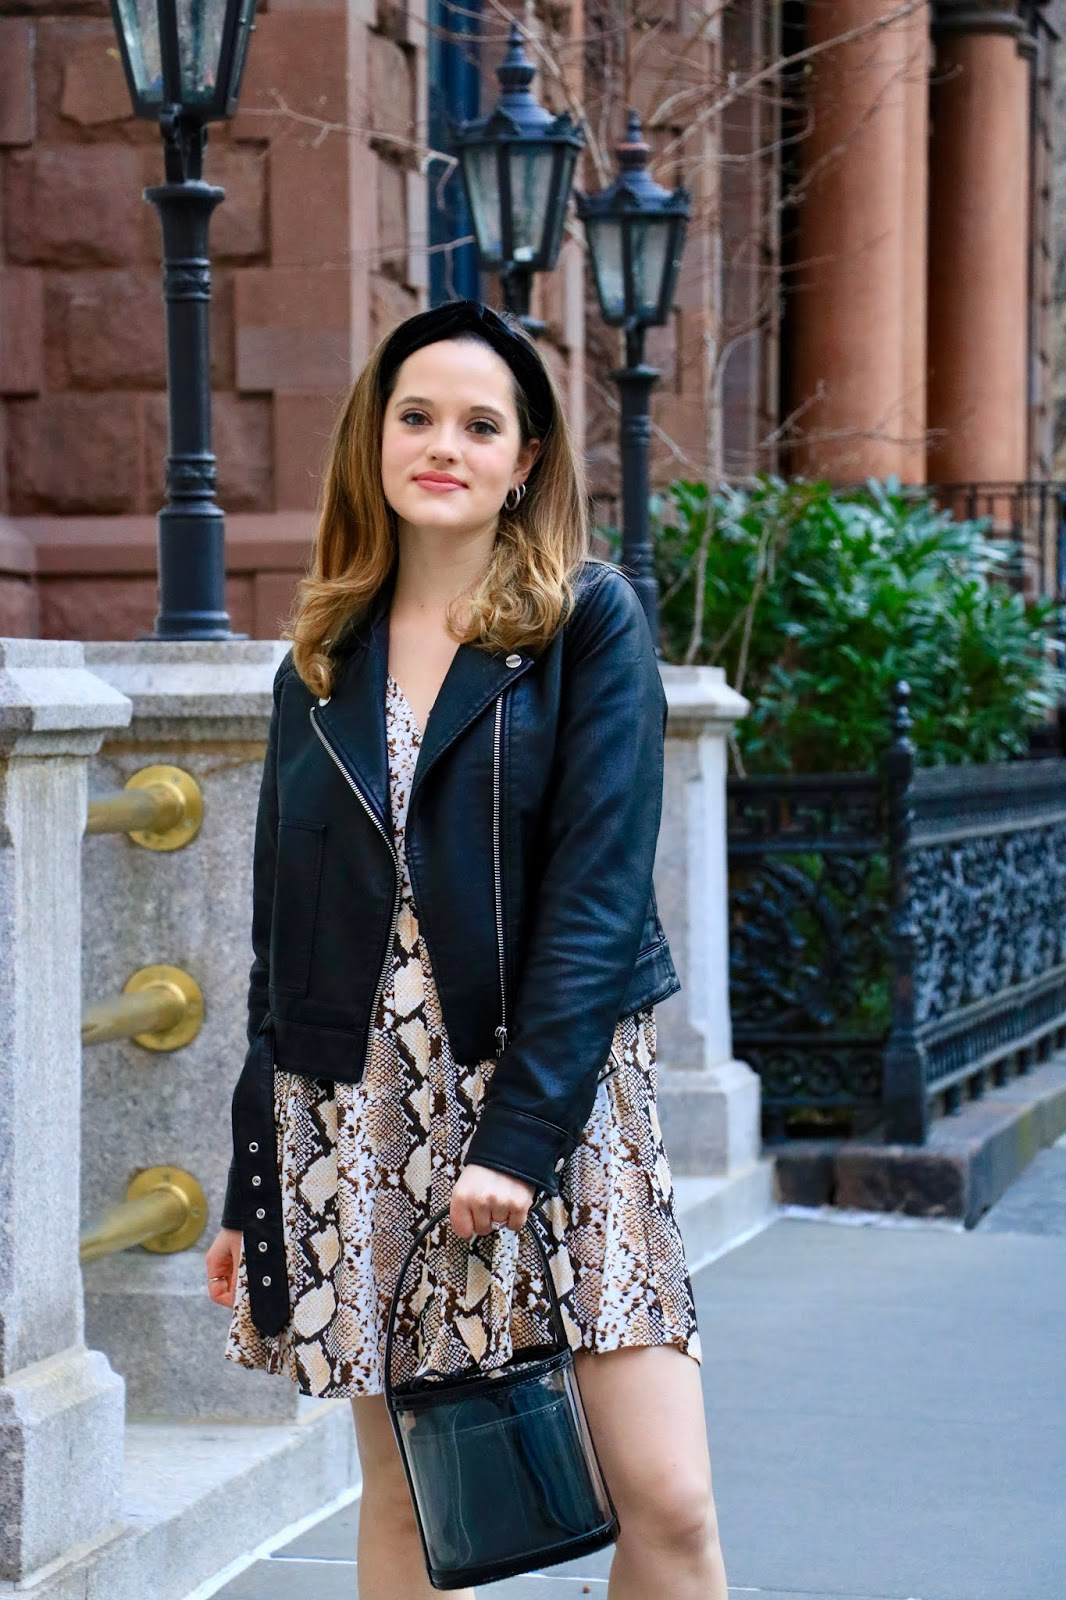 Nyc fashion blogger Kathleen Harper wearing a leather jacket outfit for spring or fall.